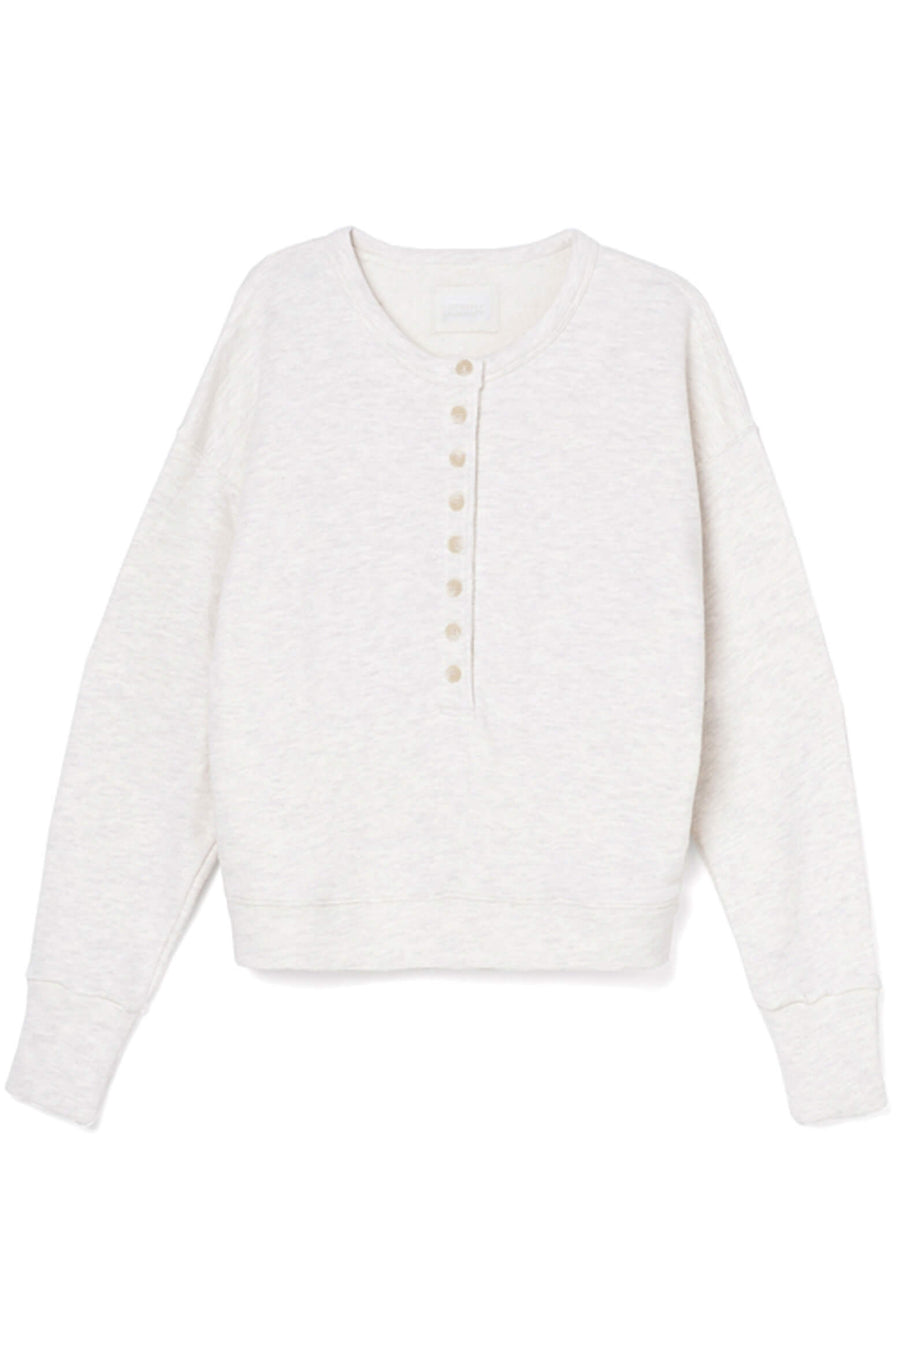 Citizens Of Humanity Cora Henley Sweatshirt in Oatmeal Heather from The New Trend